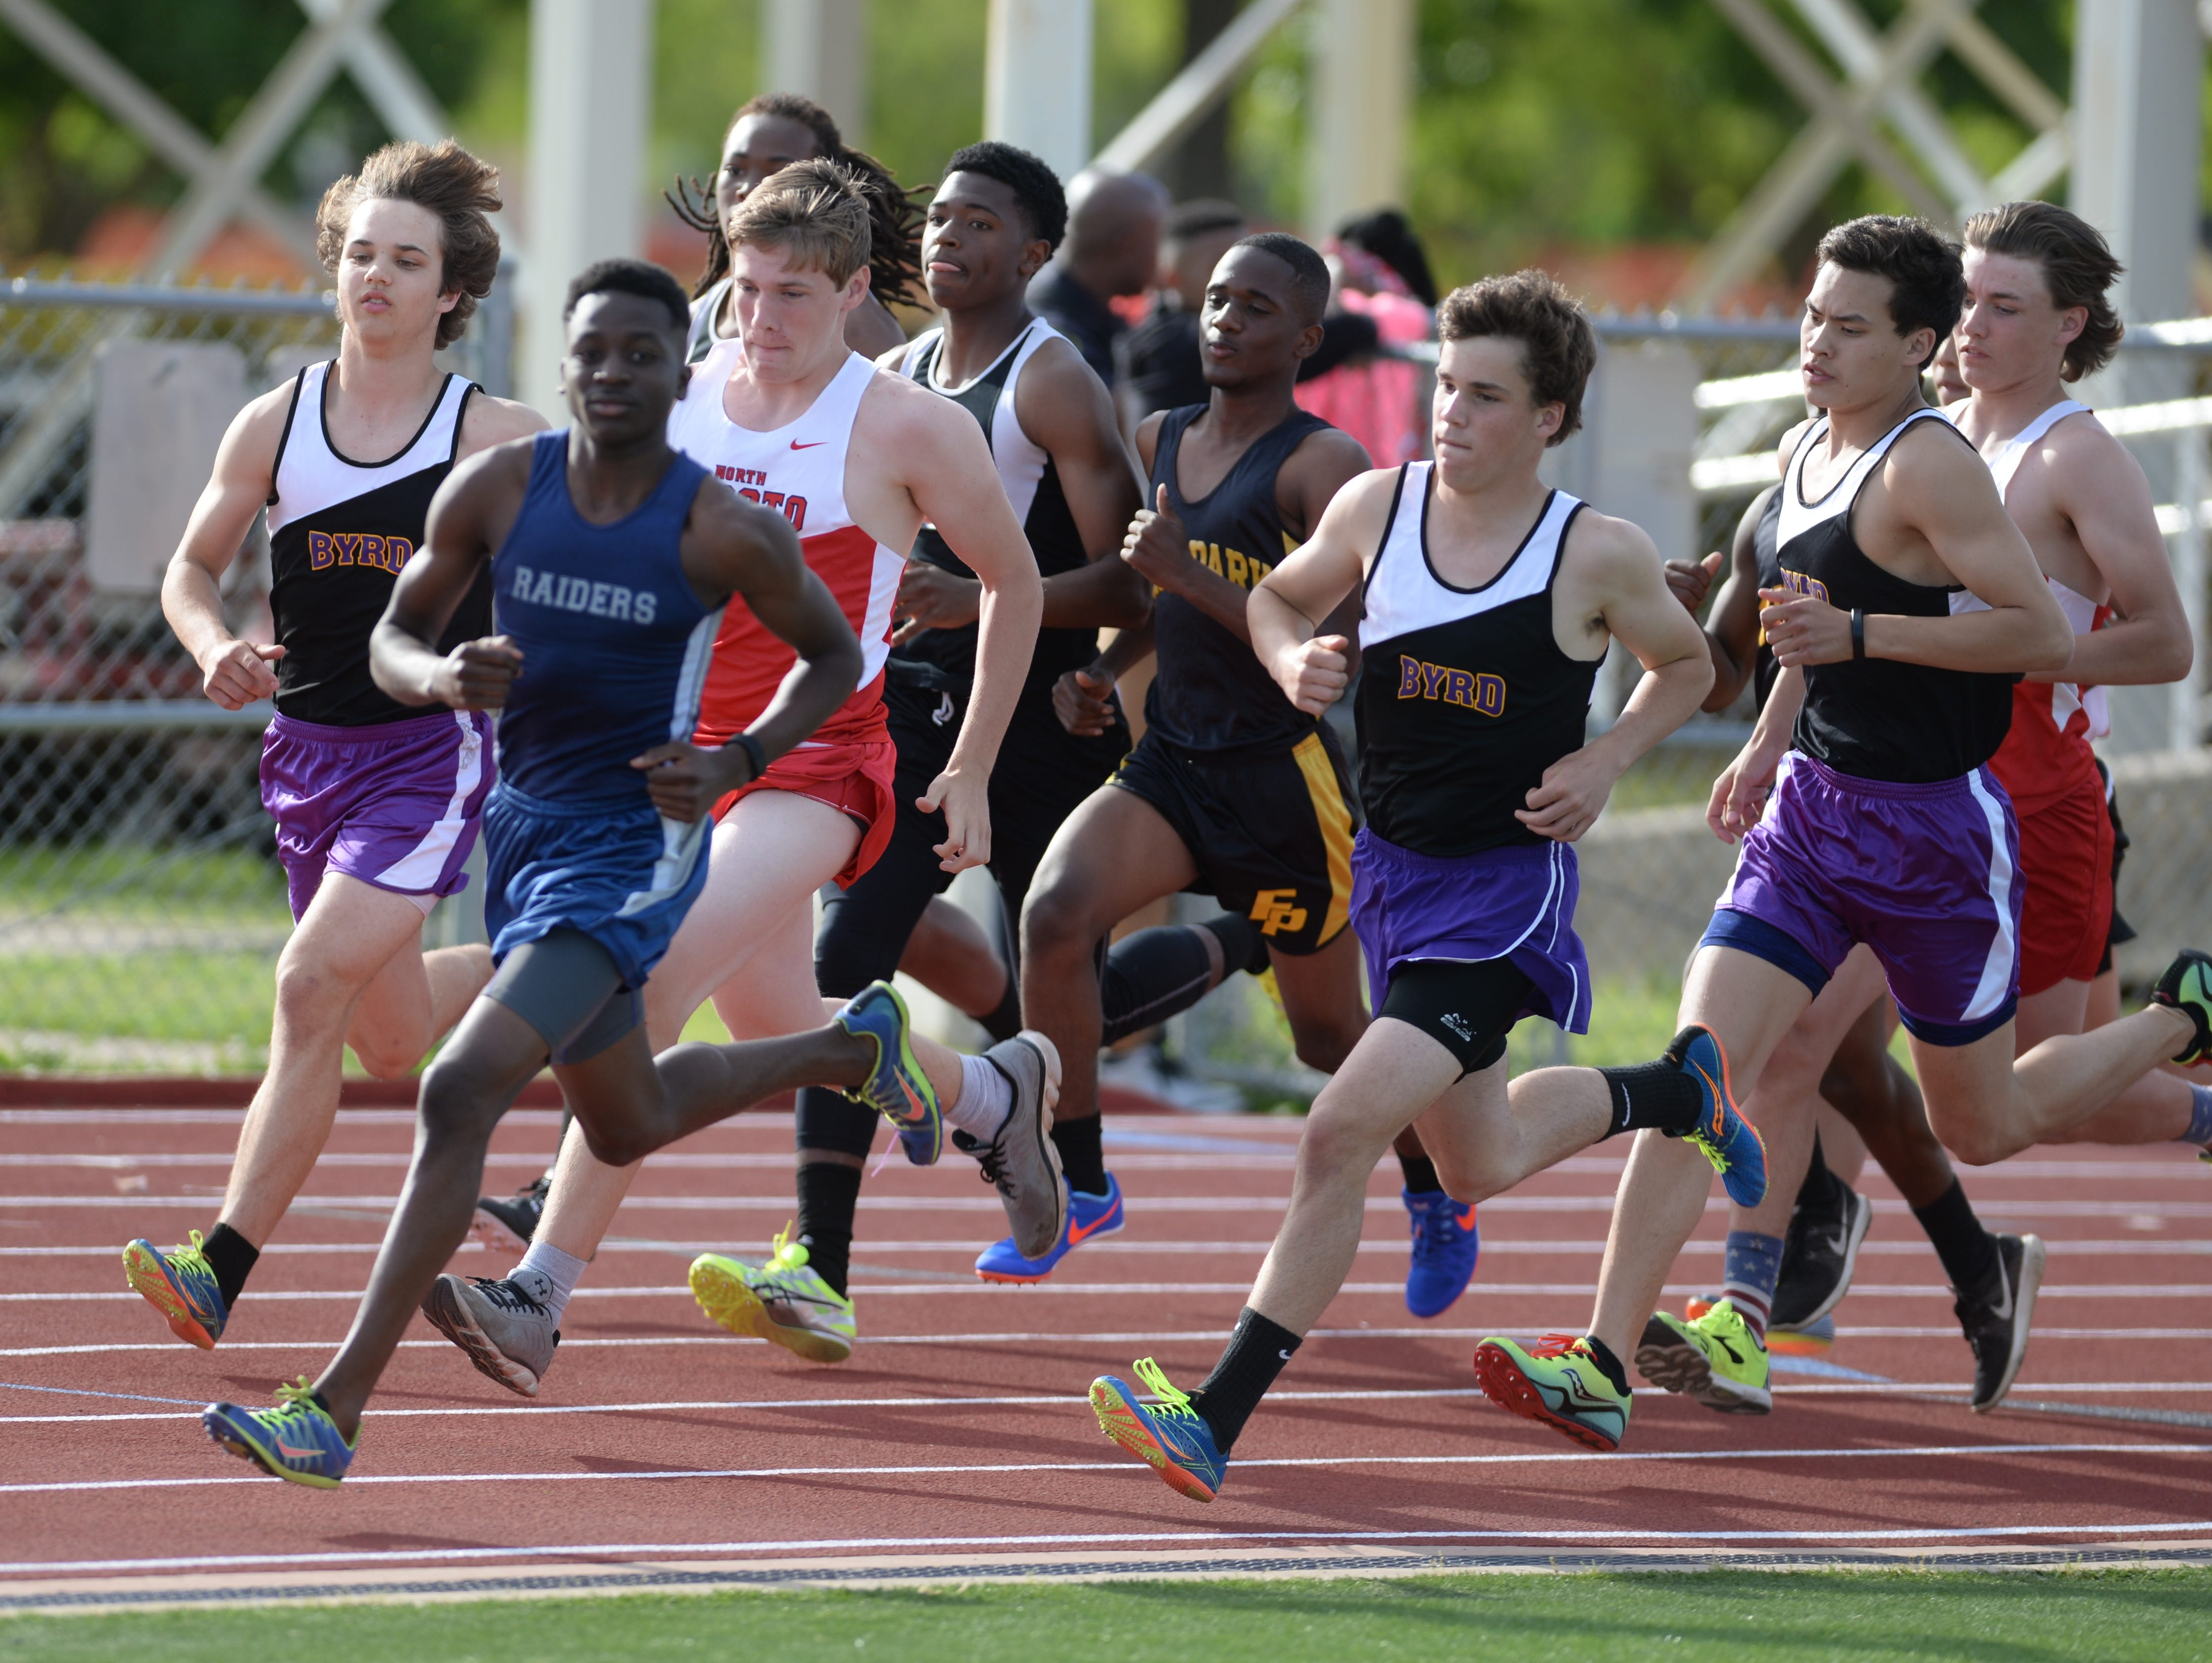 The boy's 1600M run gets underway at the Shreveport relays.